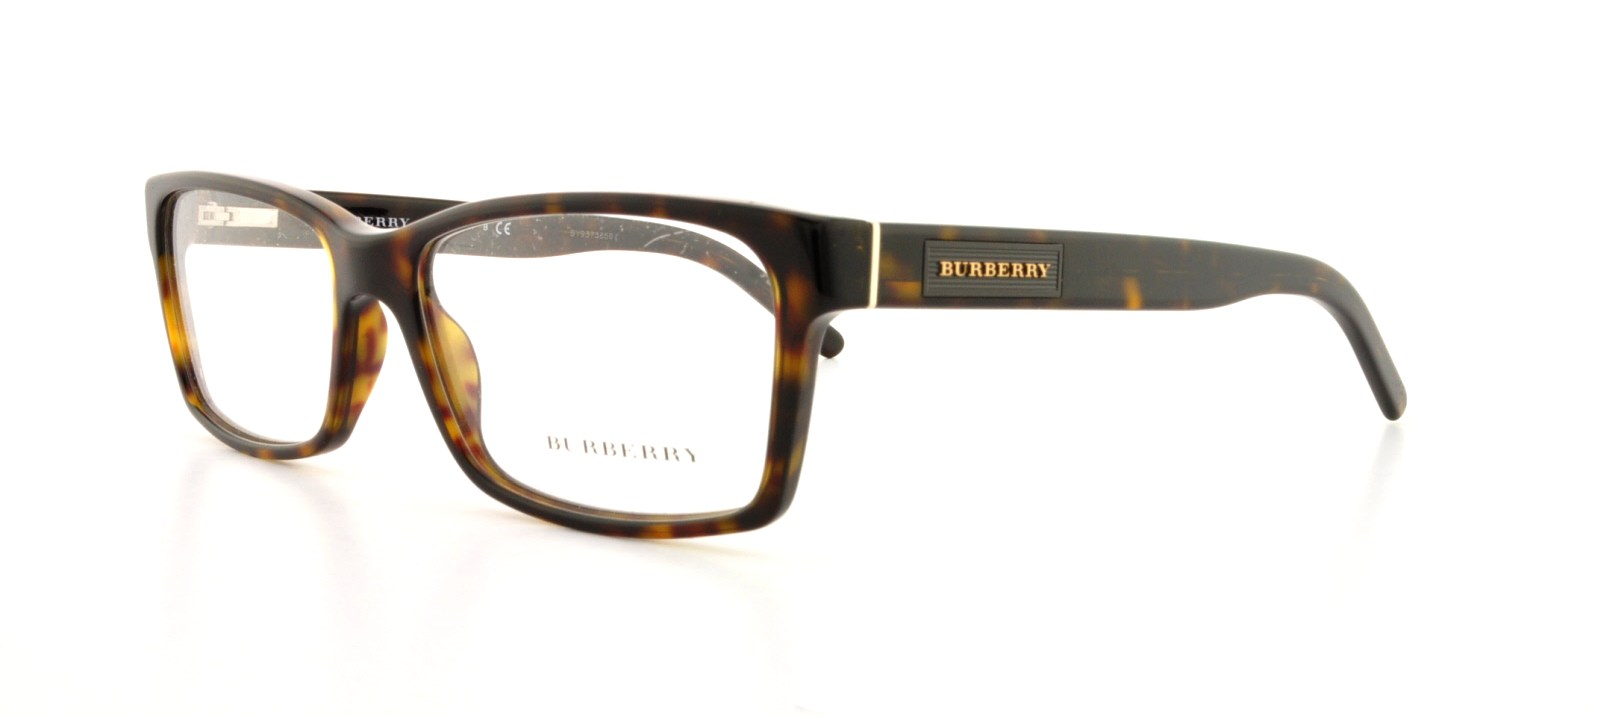 6f00babcc64 Designer Frames Outlet. Burberry BE2108